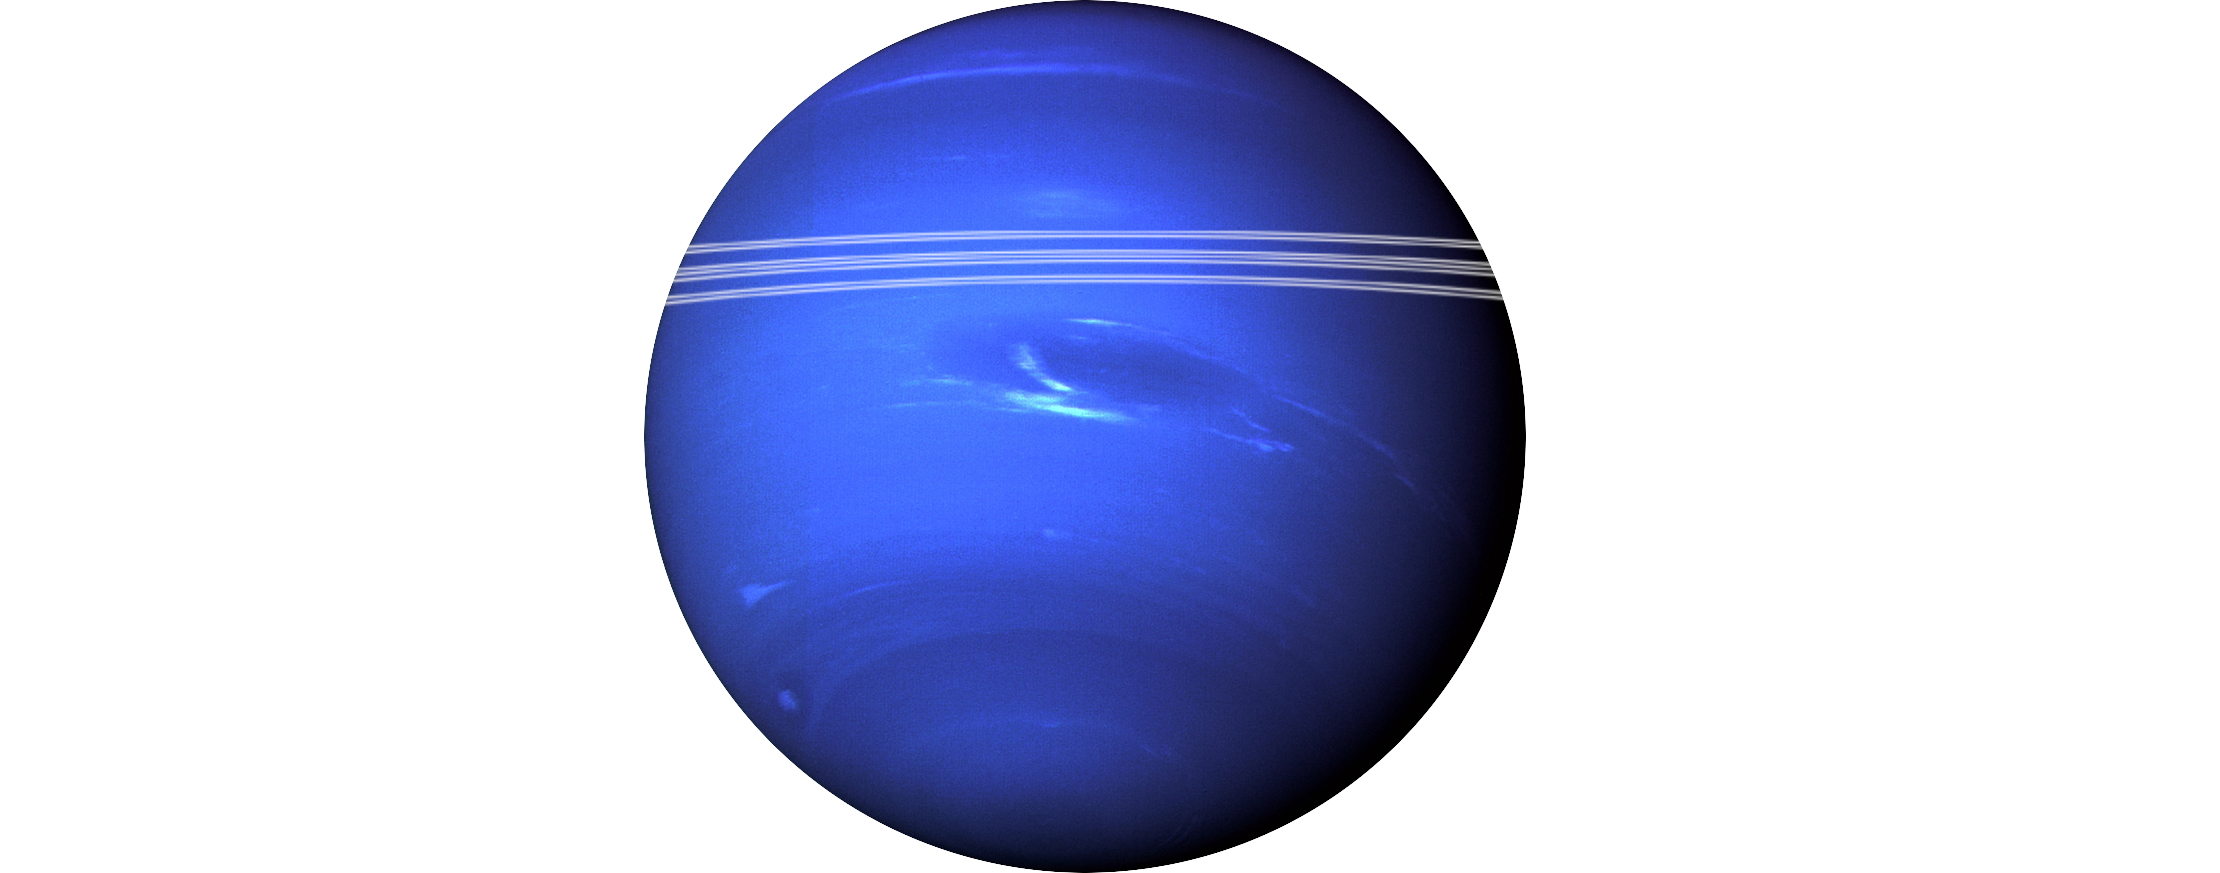 .png transparent background. File neptune with rings